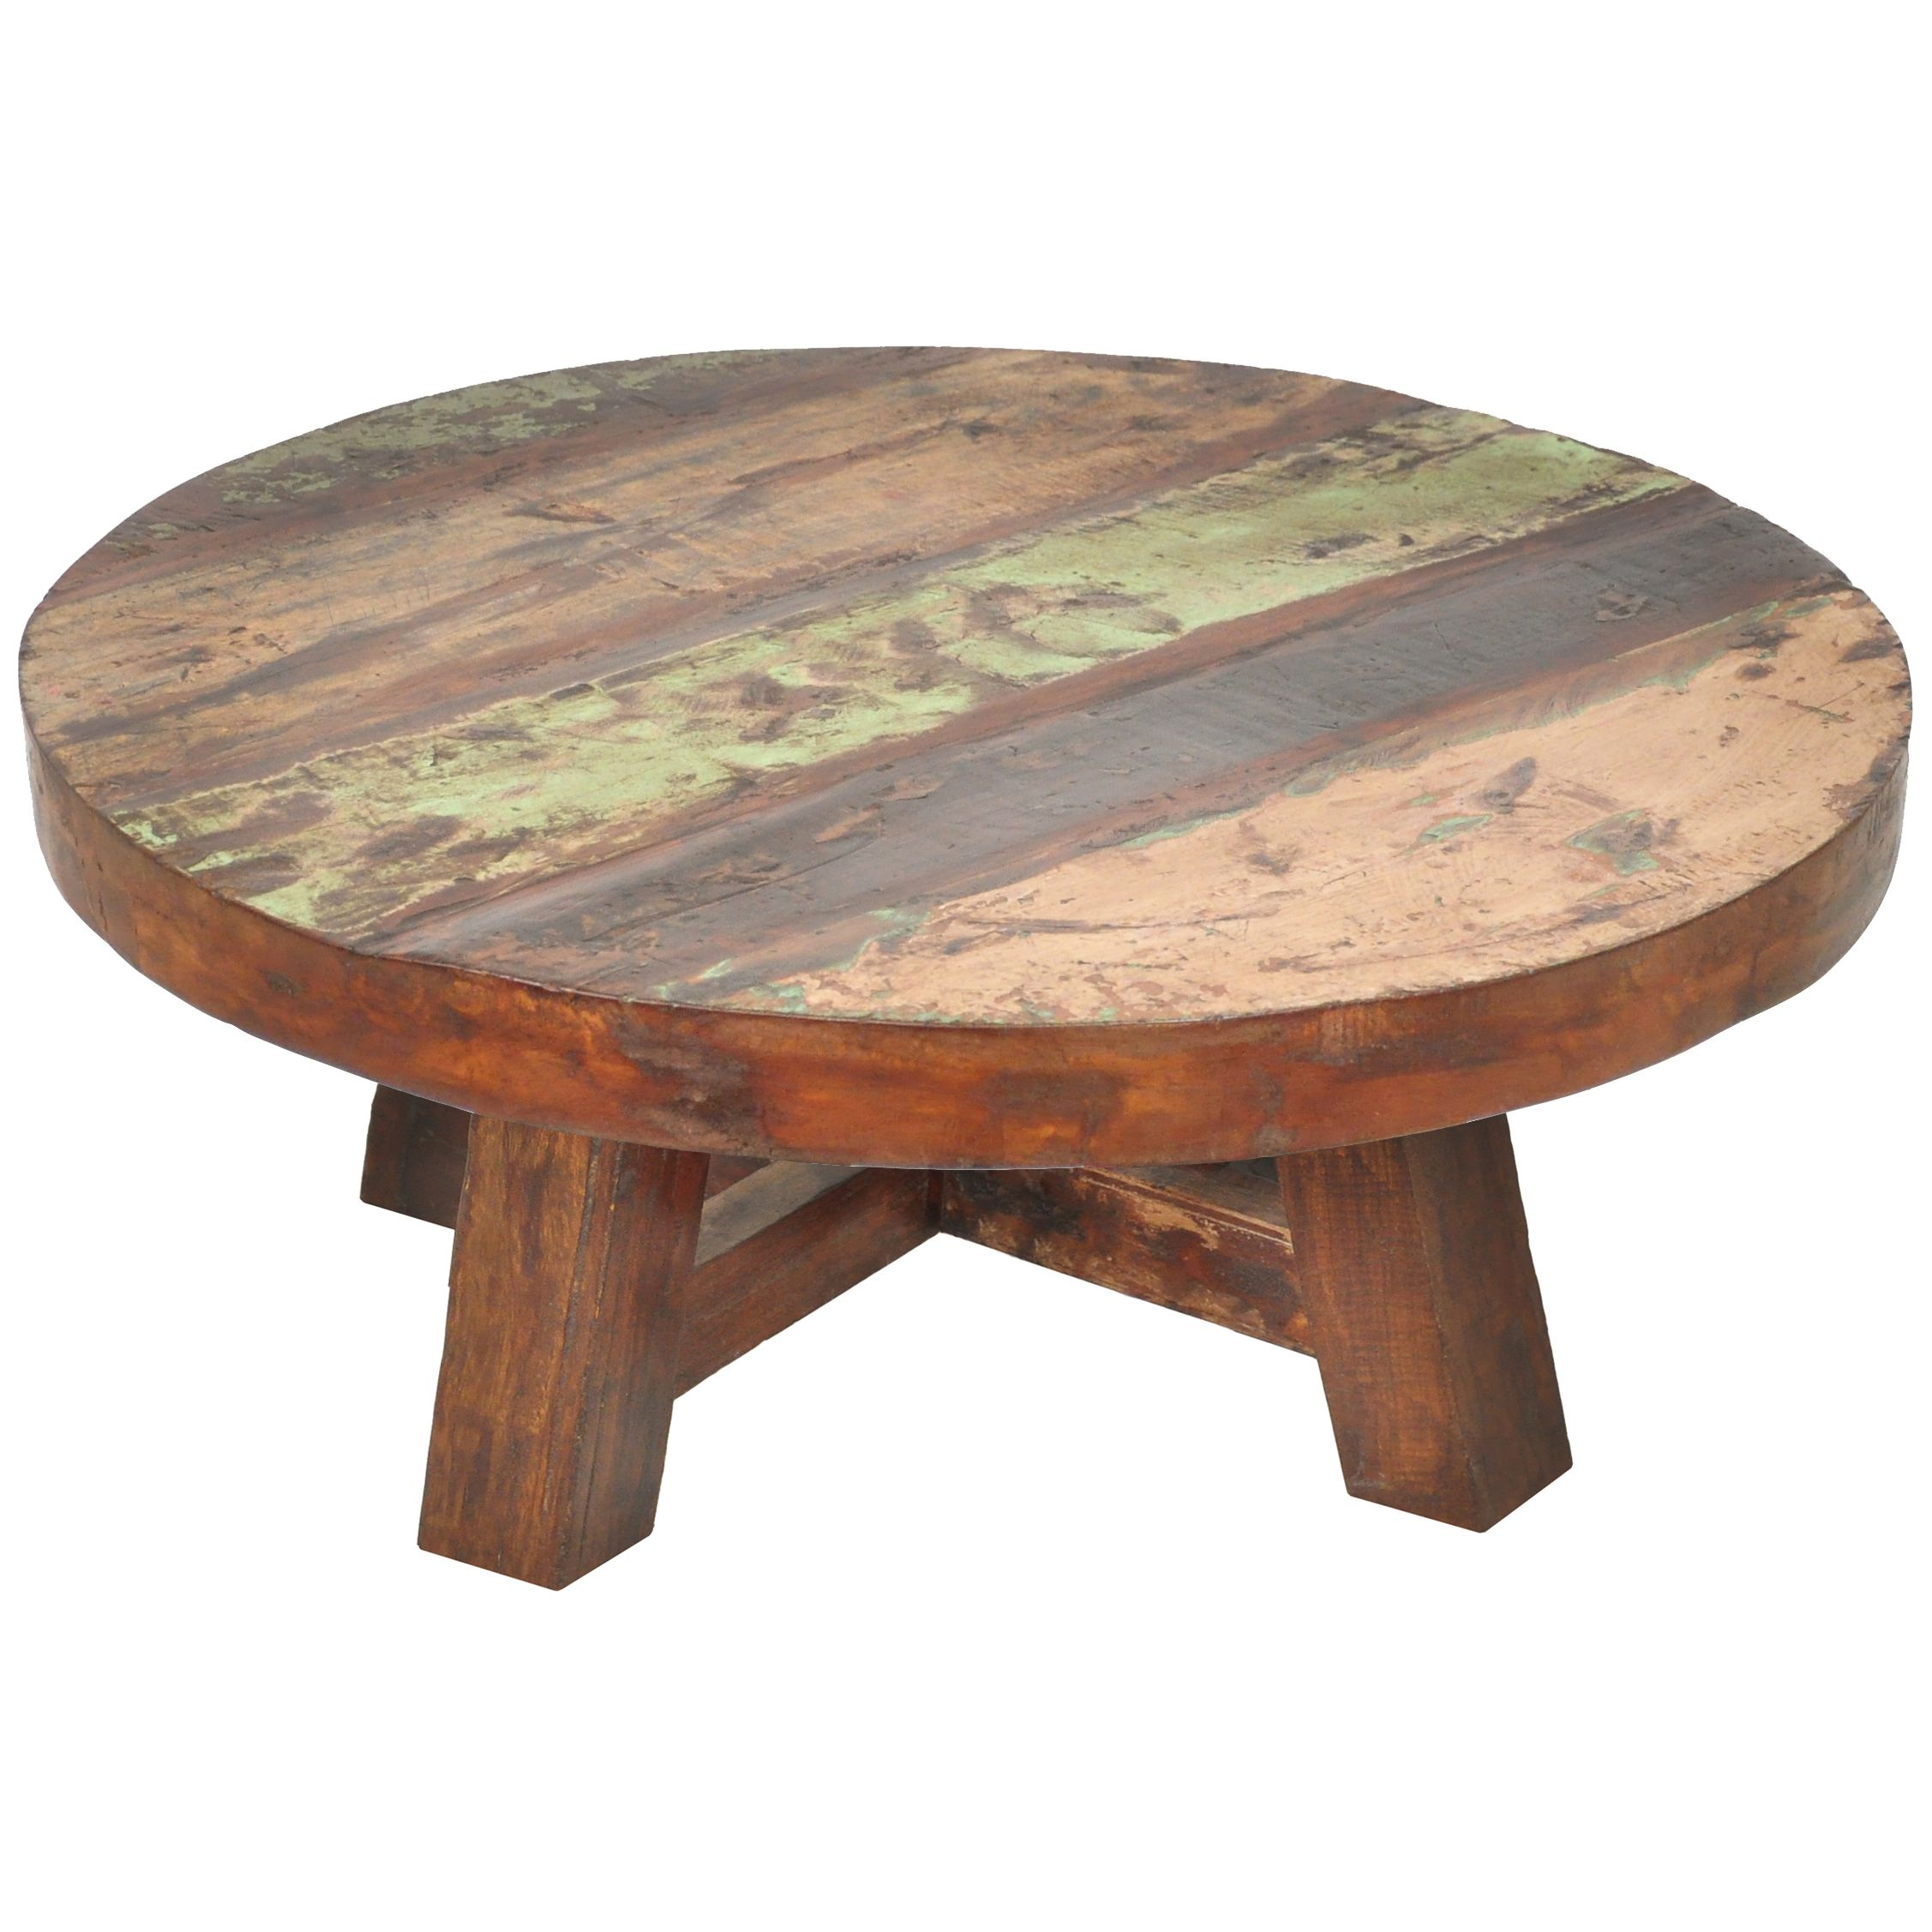 round coffee table ikea natural boat wood with natural texture and